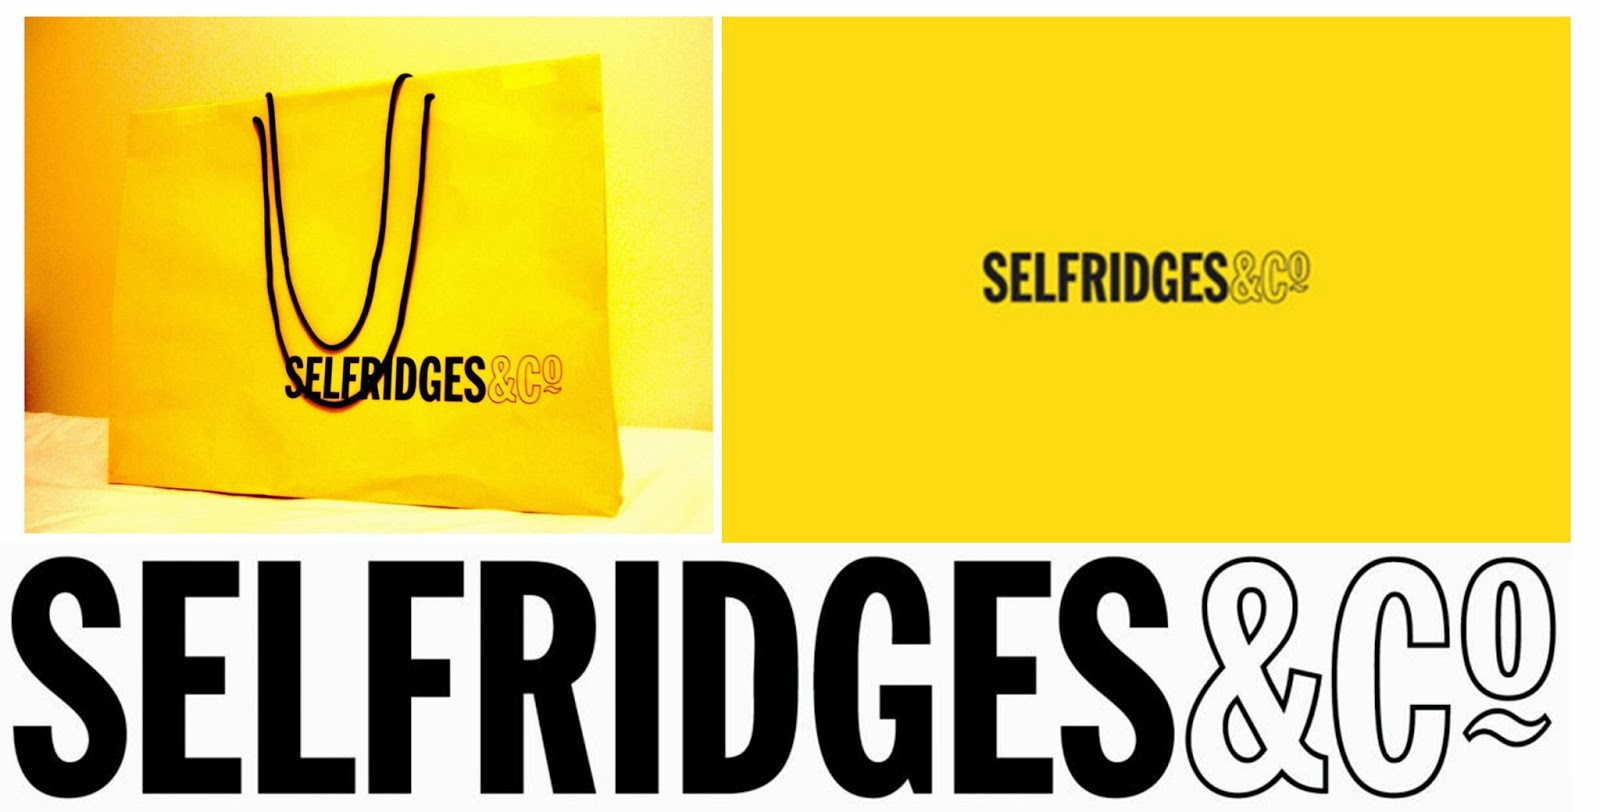 1d560b9a8042 The Logo that Selfridges have supported is known across the whole world.  This has become a well established department store used by many for  different ...